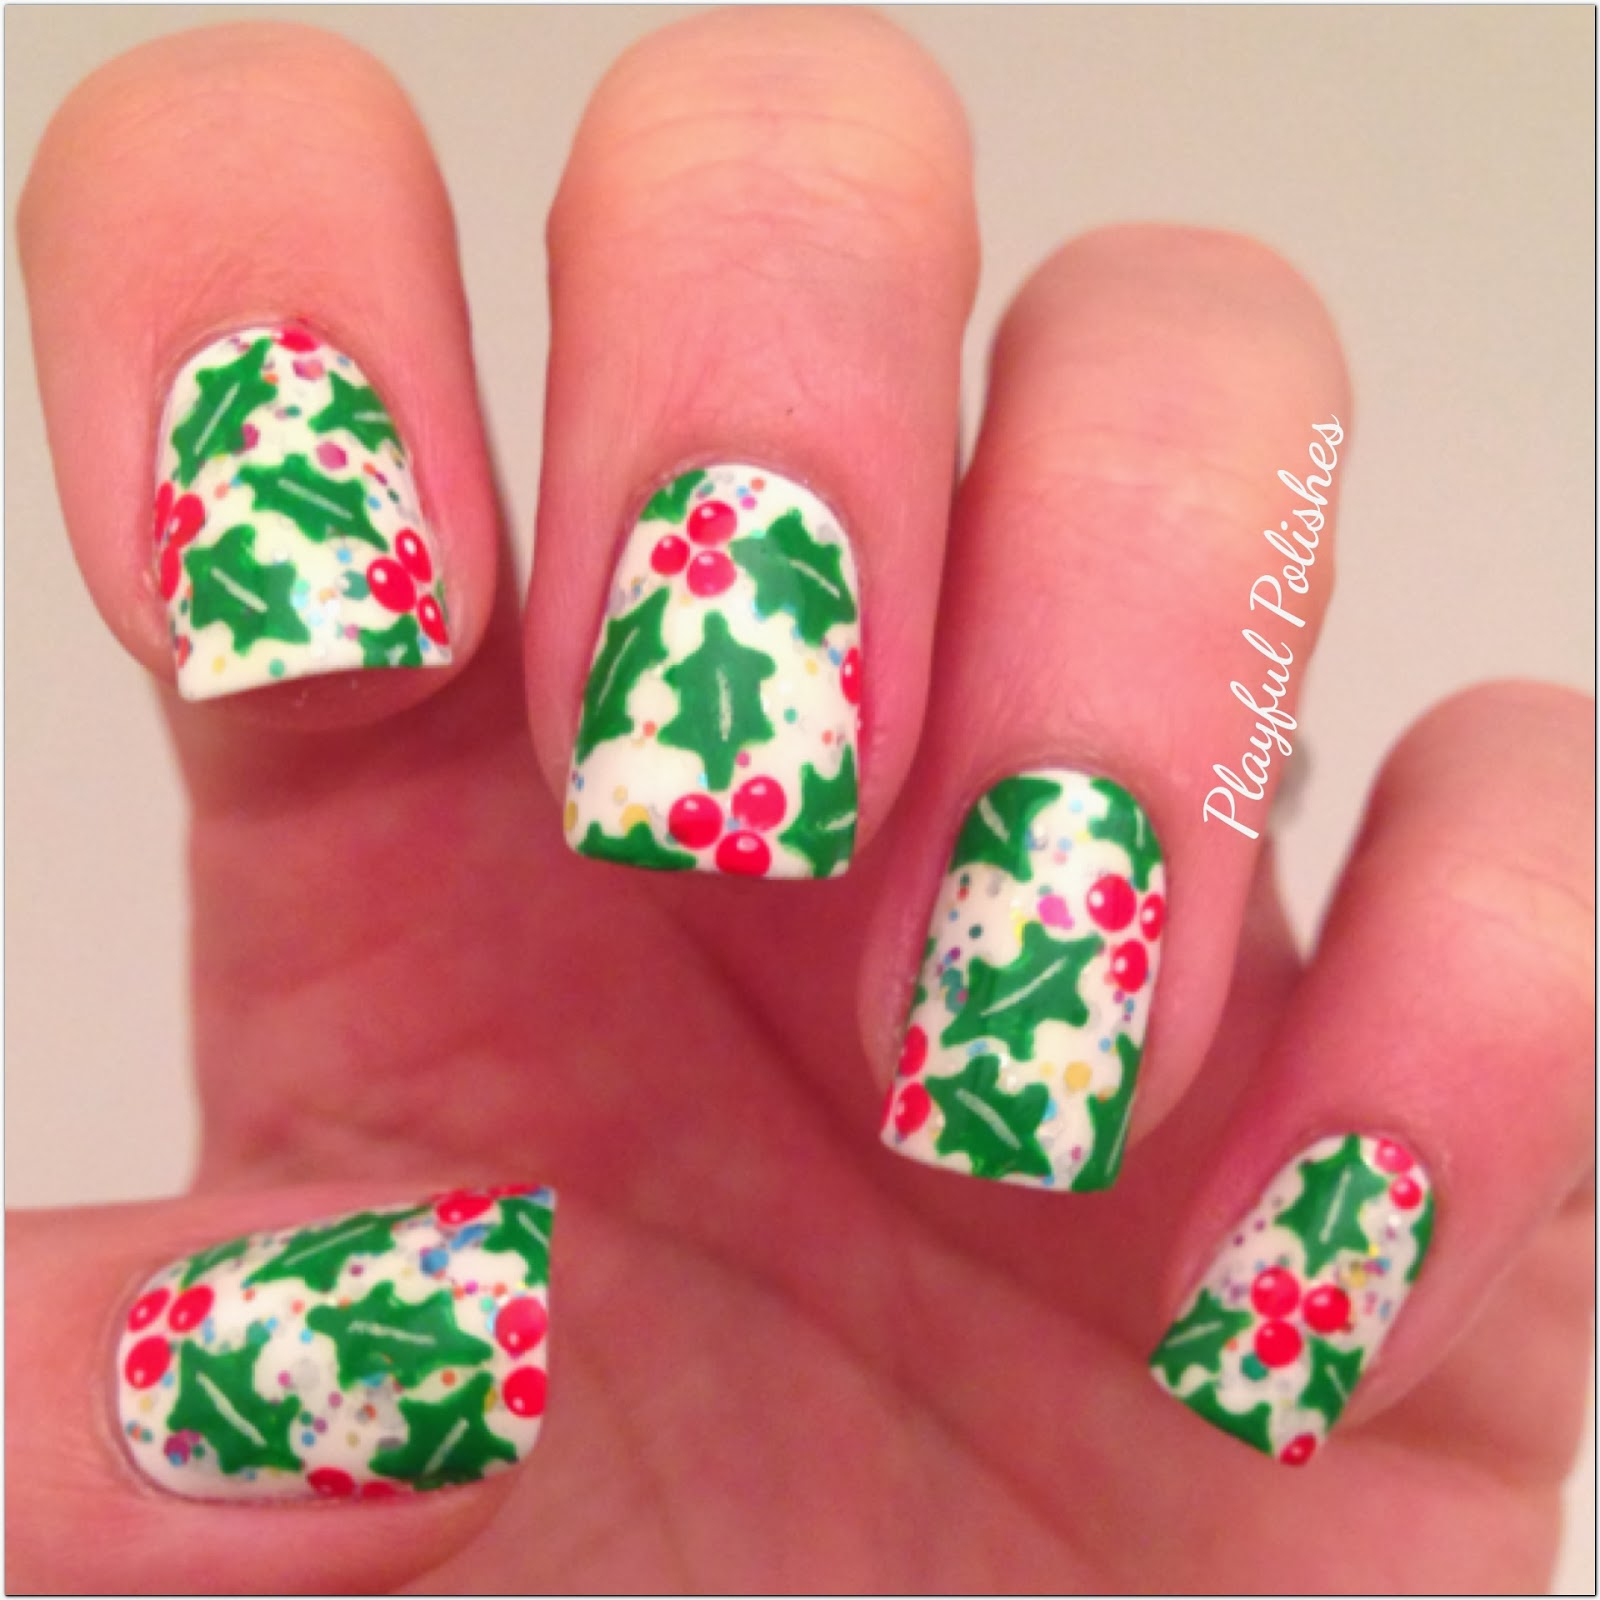 Playful Polishes Holly Nails